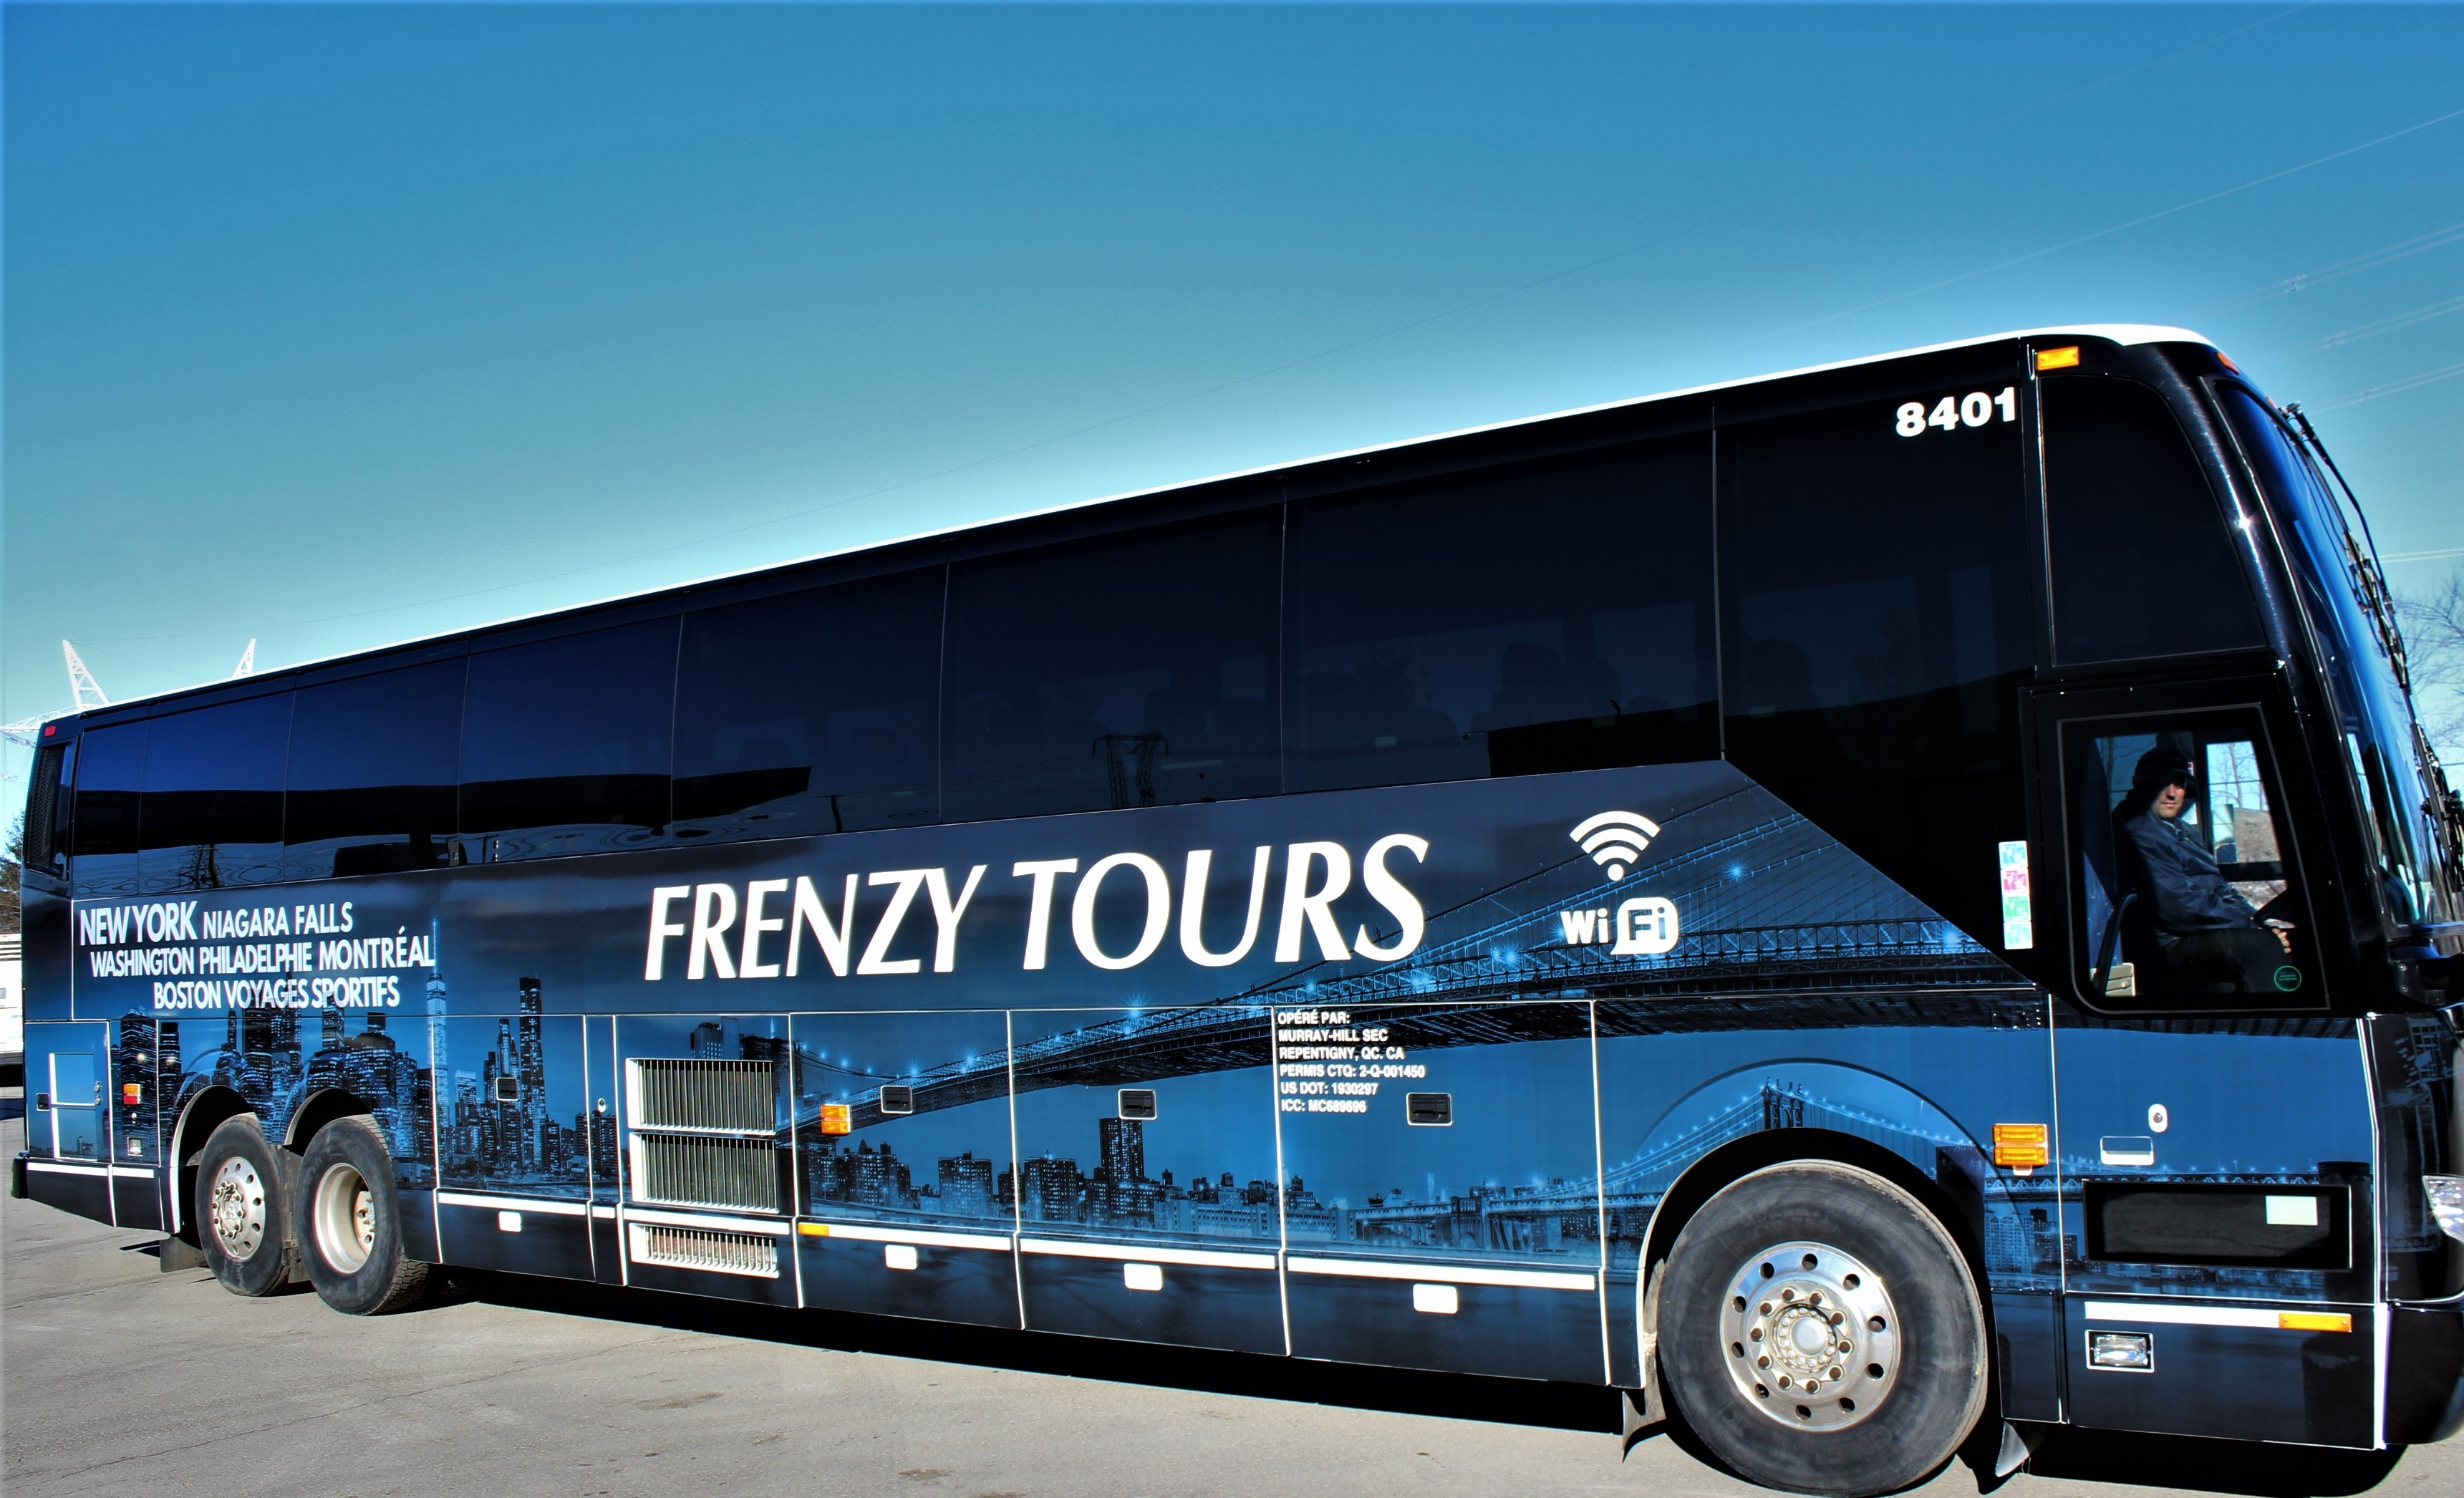 Our New bus! | Frenzy Tours